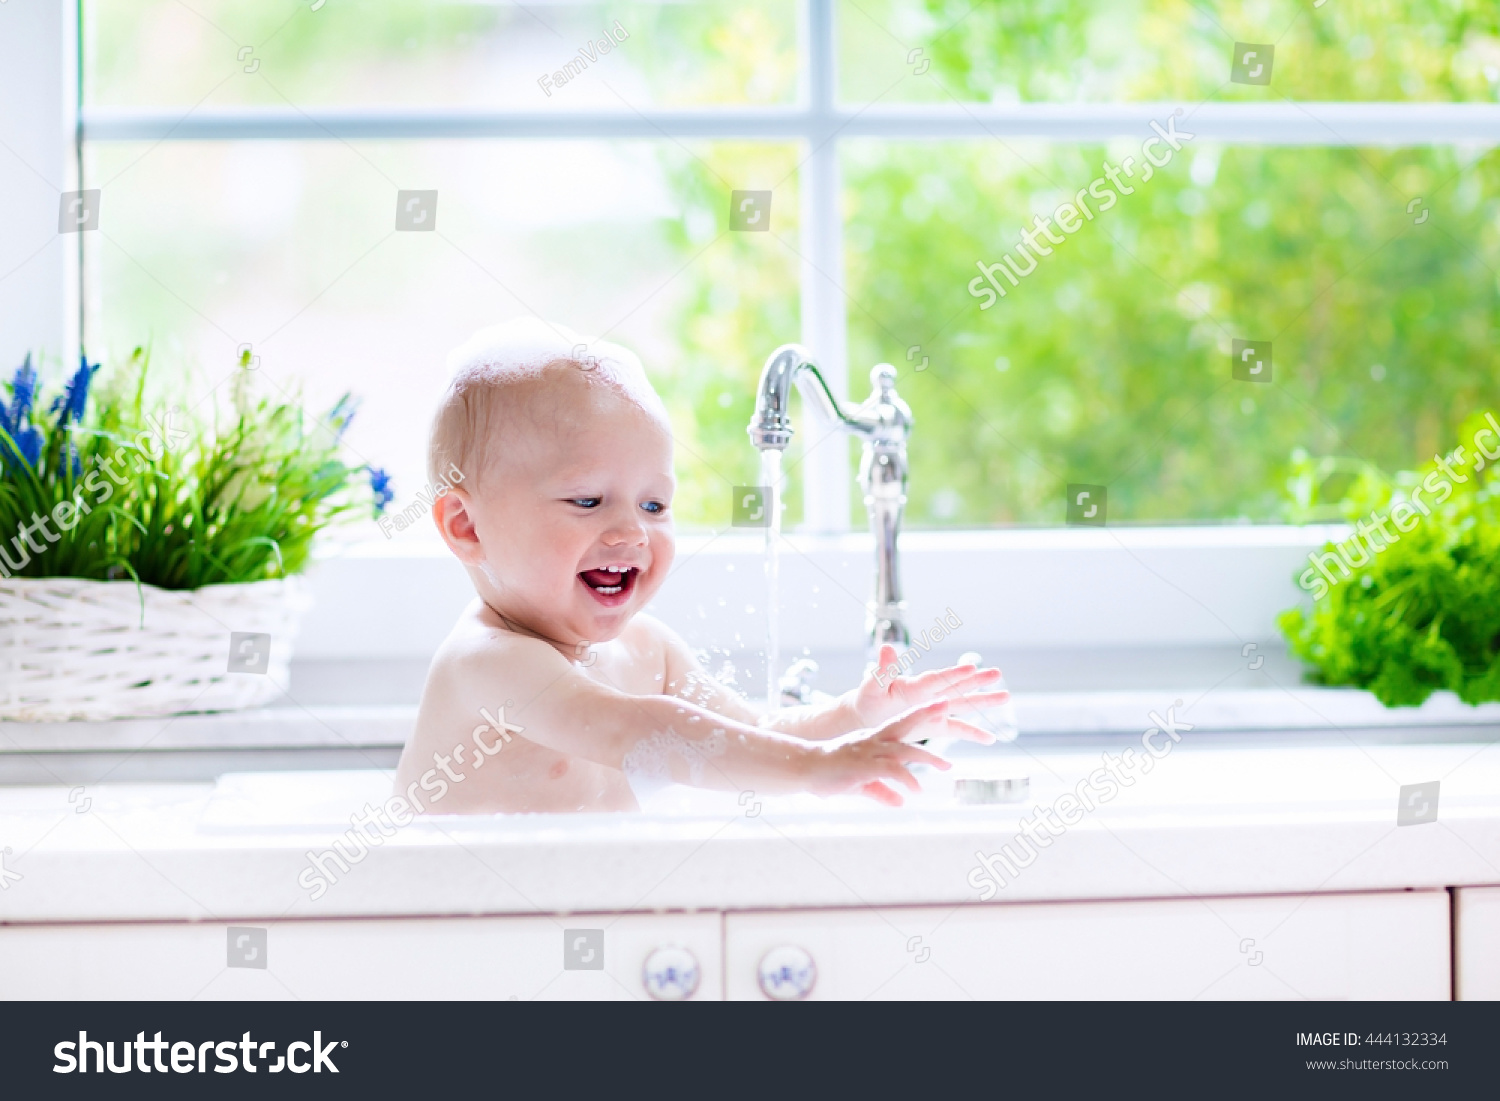 Baby Taking Bath In Kitchen Sink. Child Playing With Foam And Soap Bubbles  In Sunny